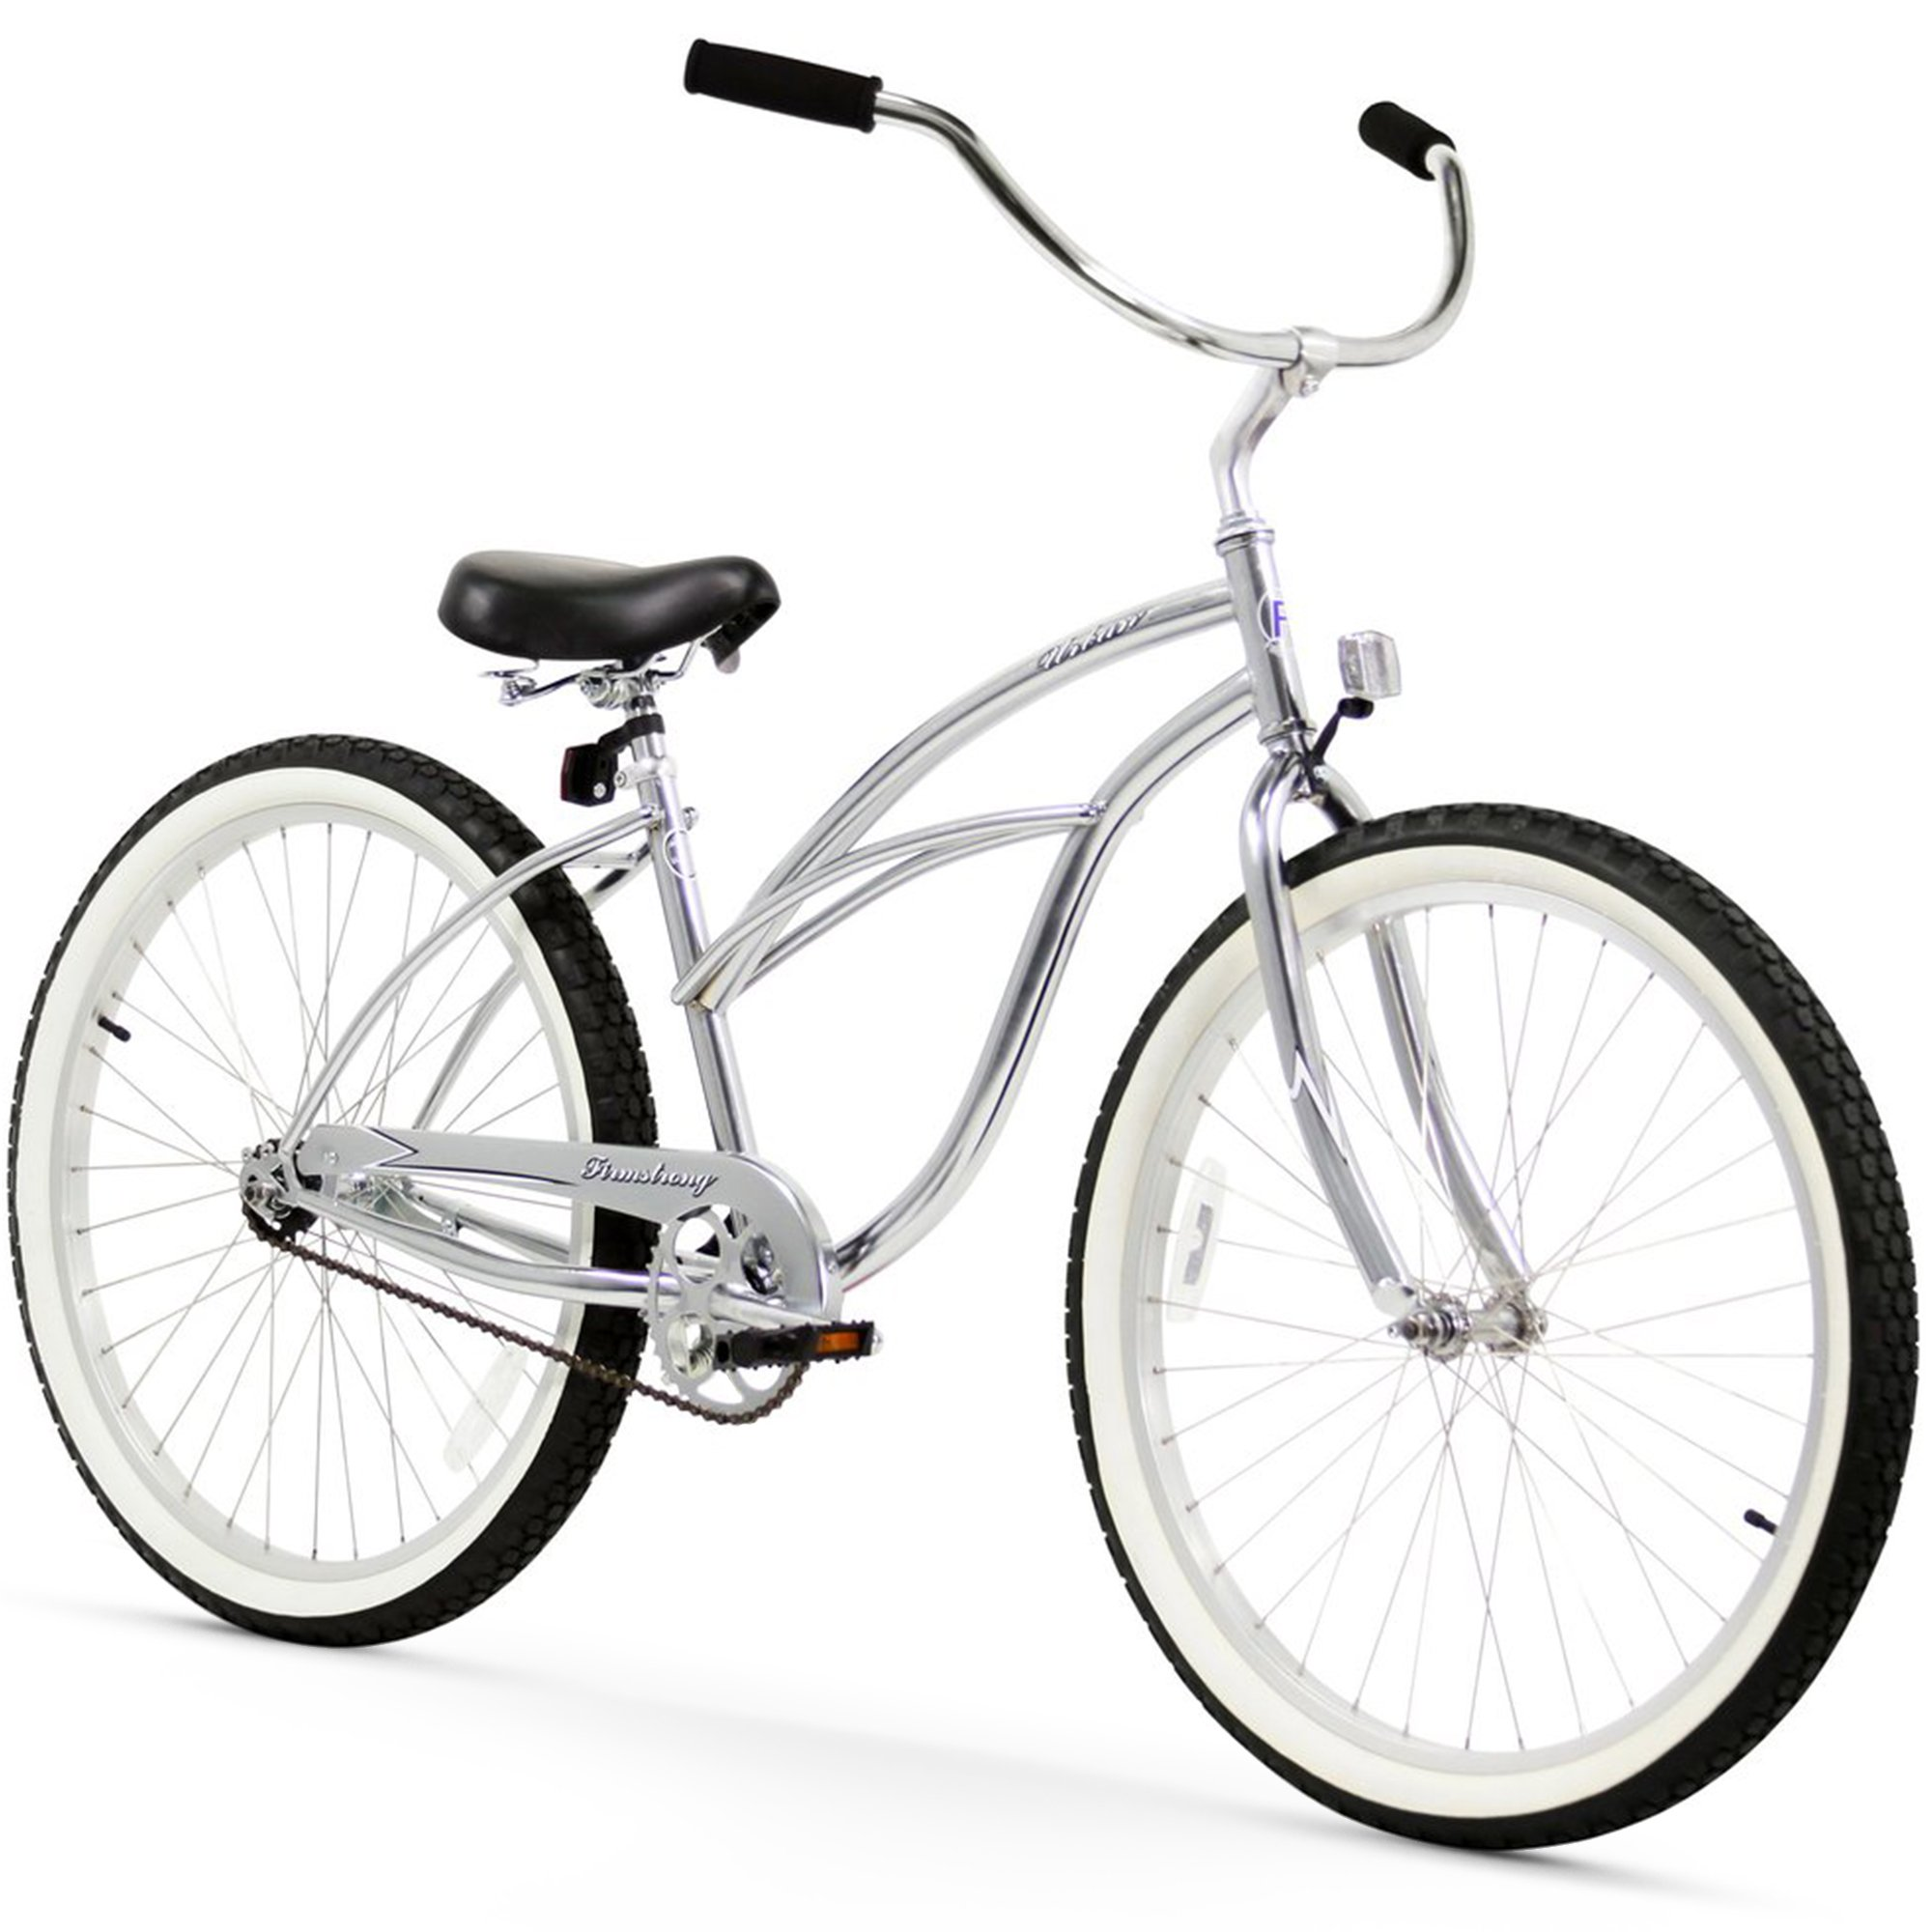 Nantucket Bicycle Front Basket LIGHTSHIP ADULT CLASSIC//TAPERED STAINED